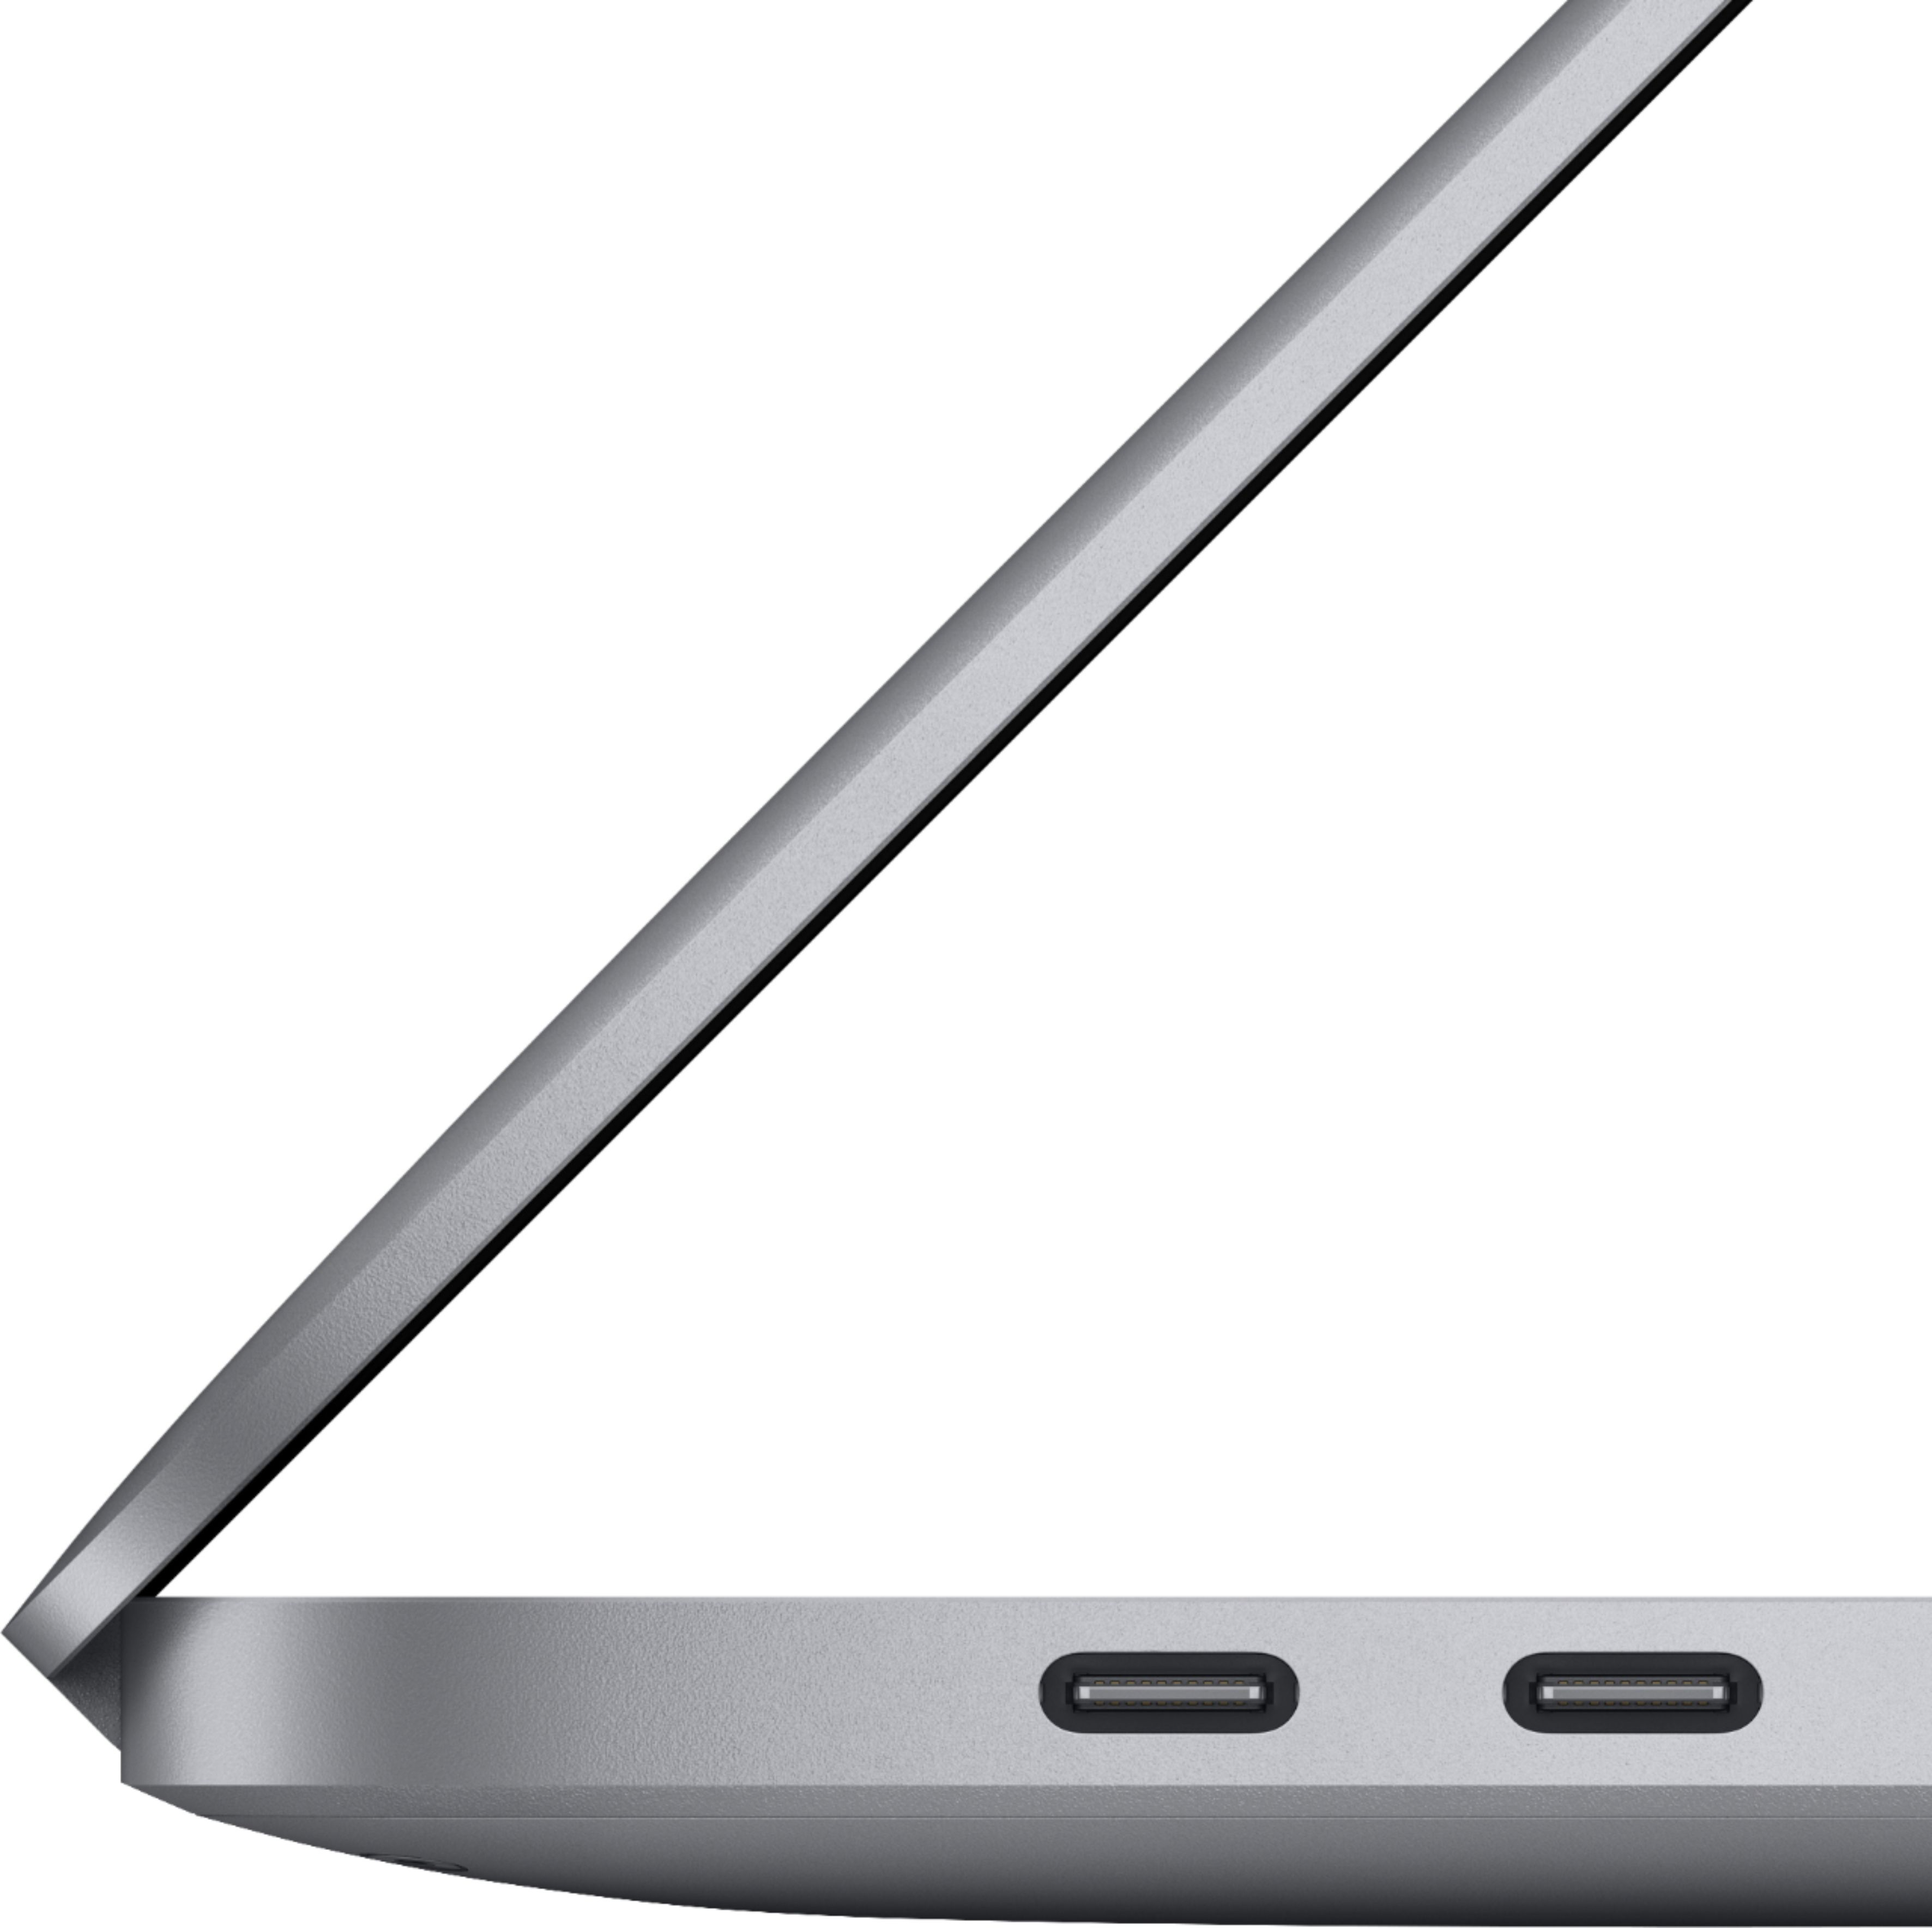 """Alt View Zoom 14. Apple - MacBook Pro - 16"""" Display with Touch Bar - Intel Core i7 - 16GB Memory - AMD Radeon Pro 5300M - 512GB SSD (Latest Model) - Space Gray."""